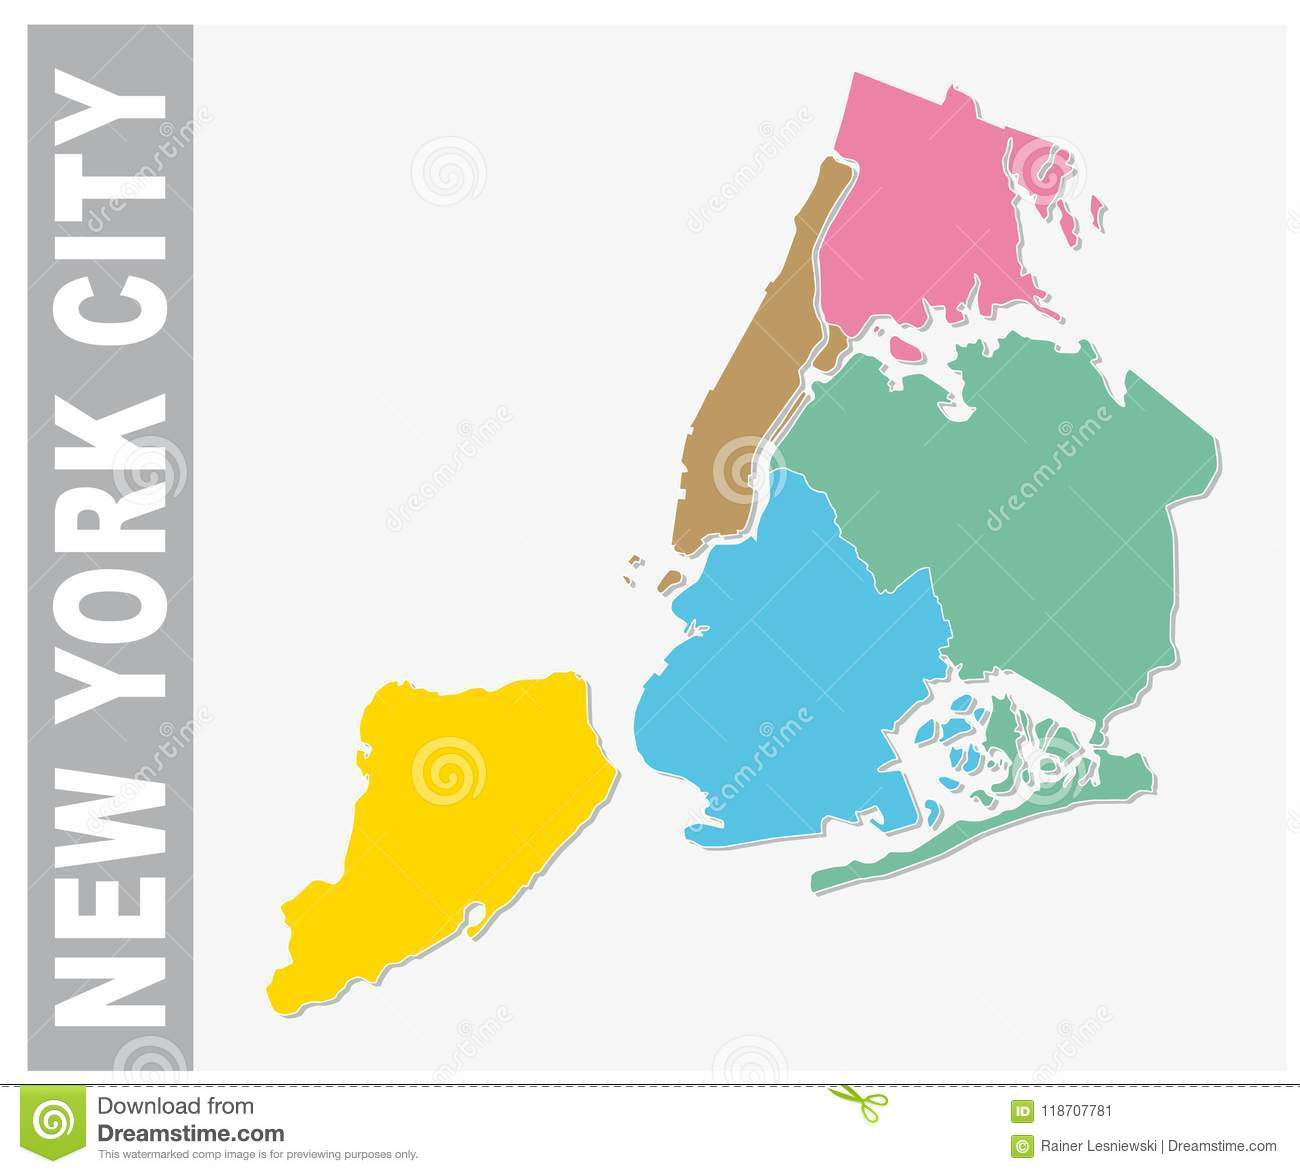 New York City On A Map Of The Us.Colorful New York City Administrative And Political Vector Map